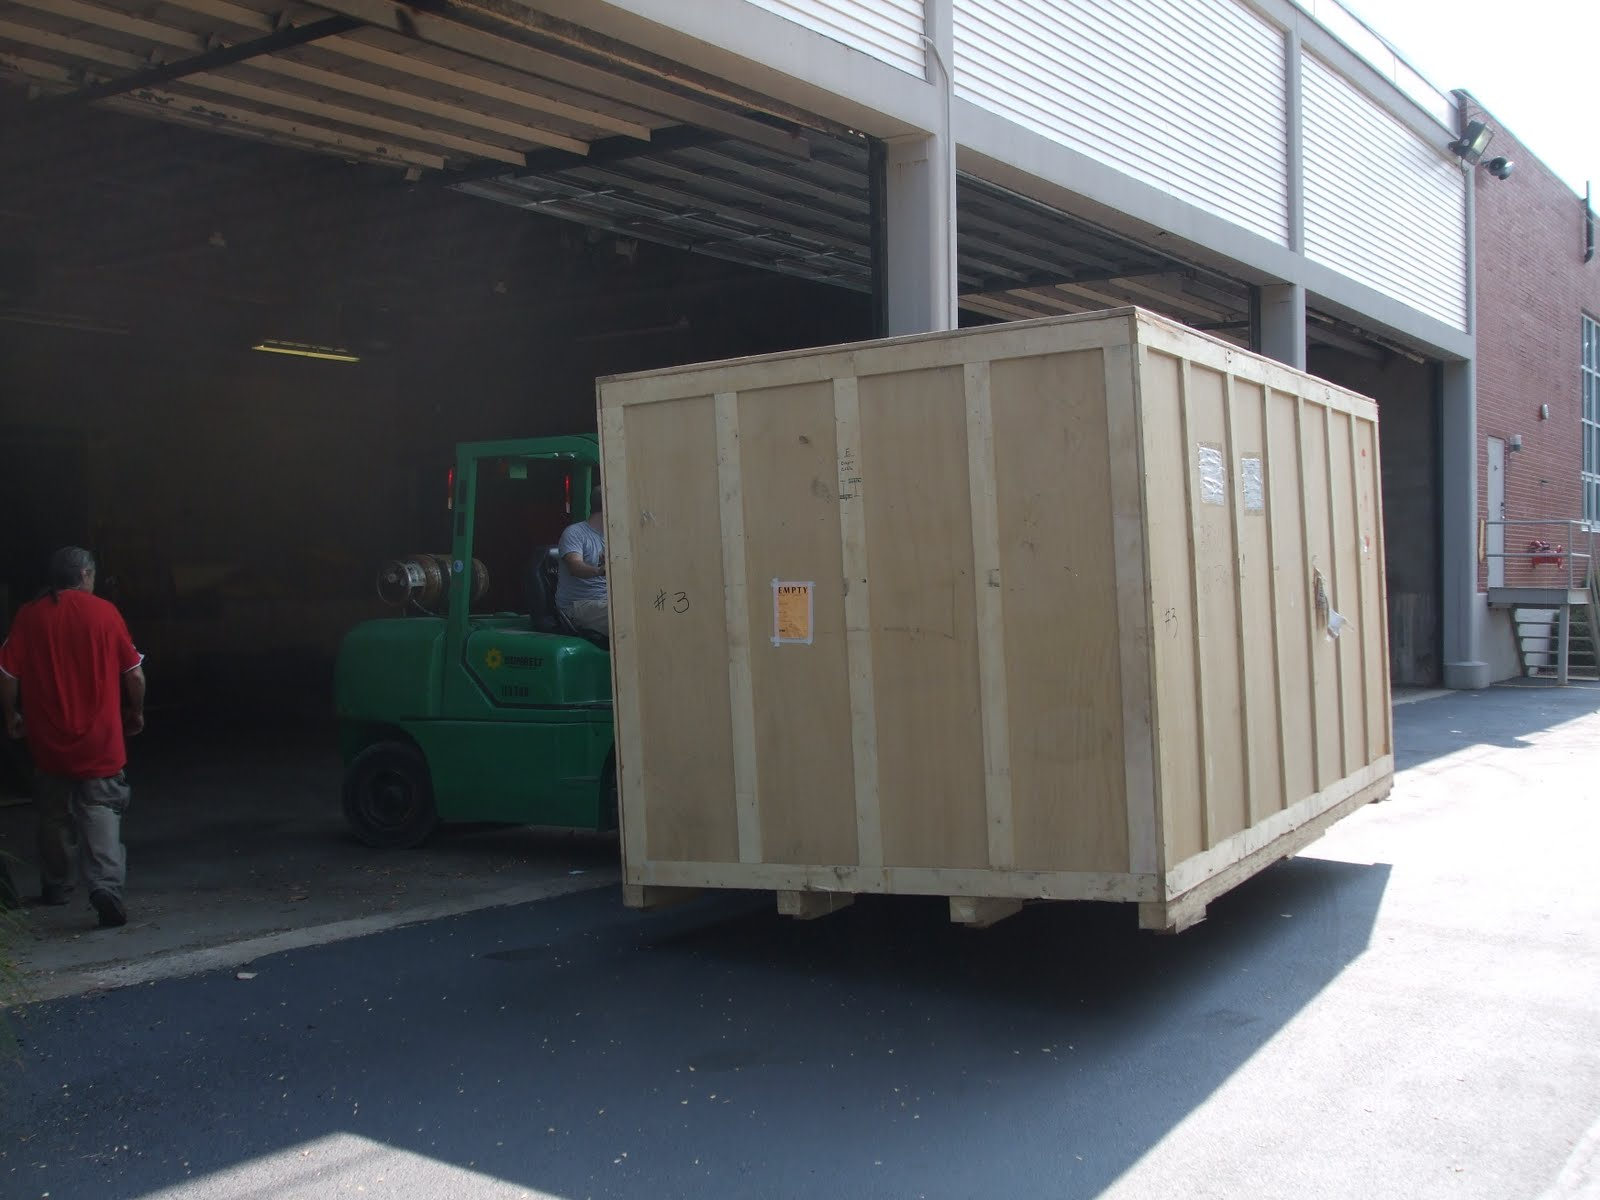 Inspection_jigs_crated_for_shipping_to_Mexico_plant